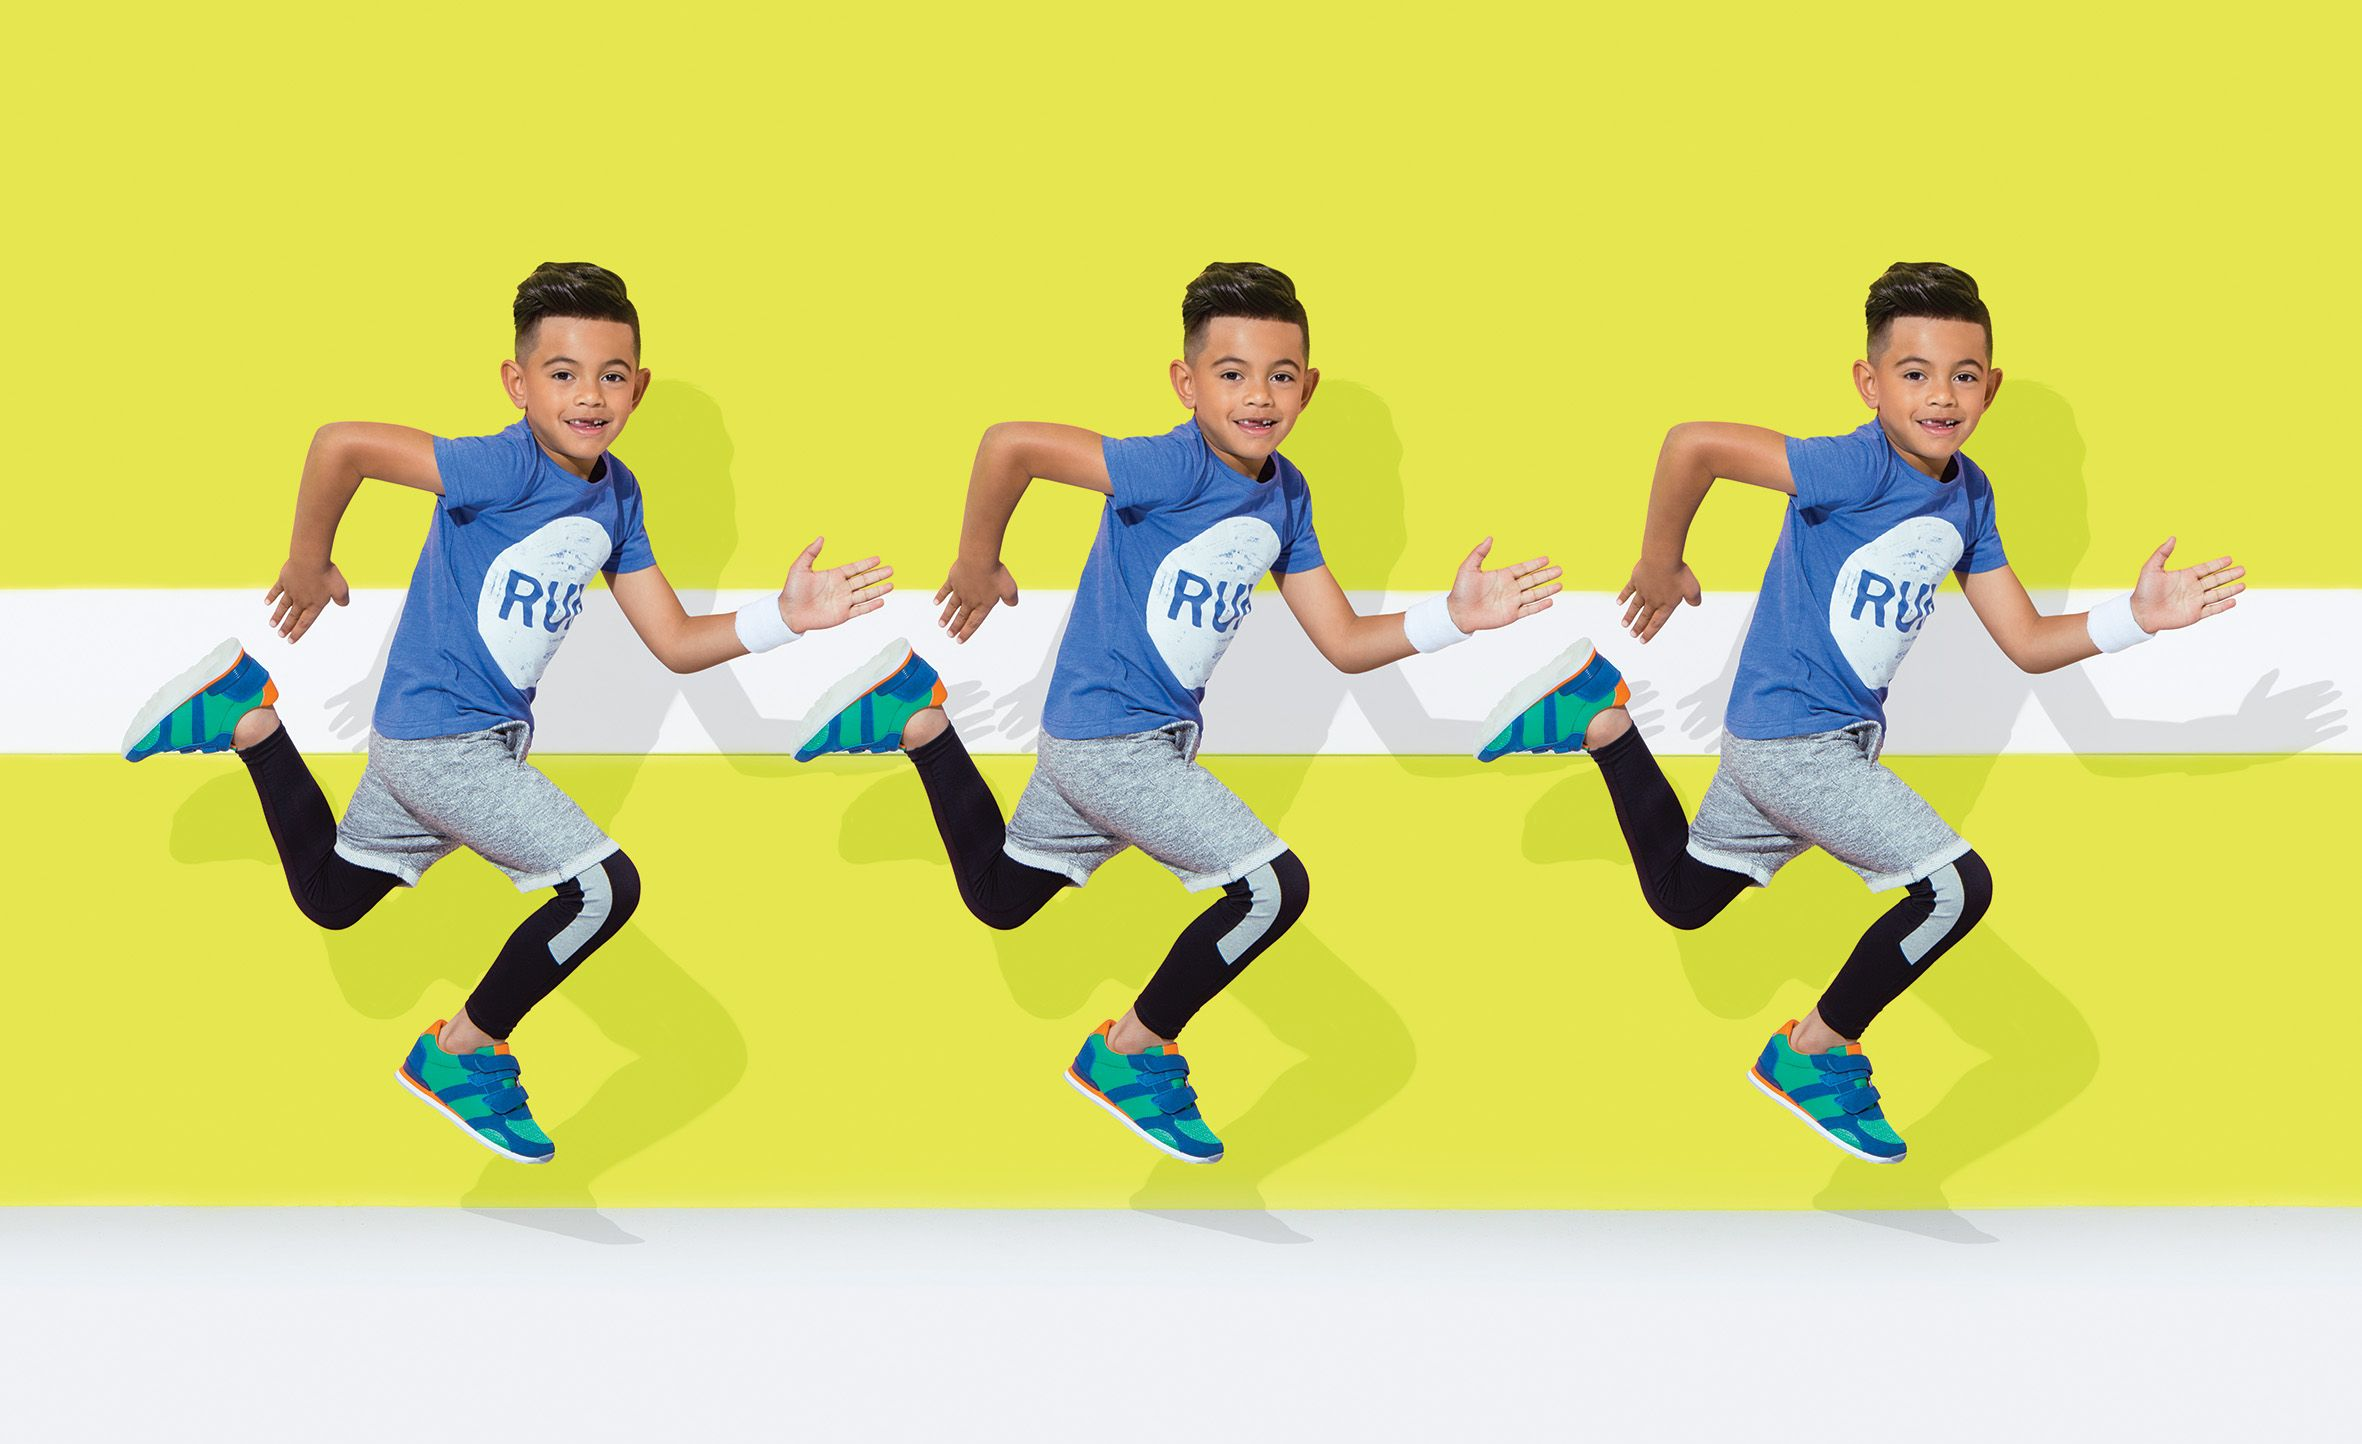 35944343f8 Cotton On Kids Active Campaign 2016 // www.cottononkids.com | Boys ...